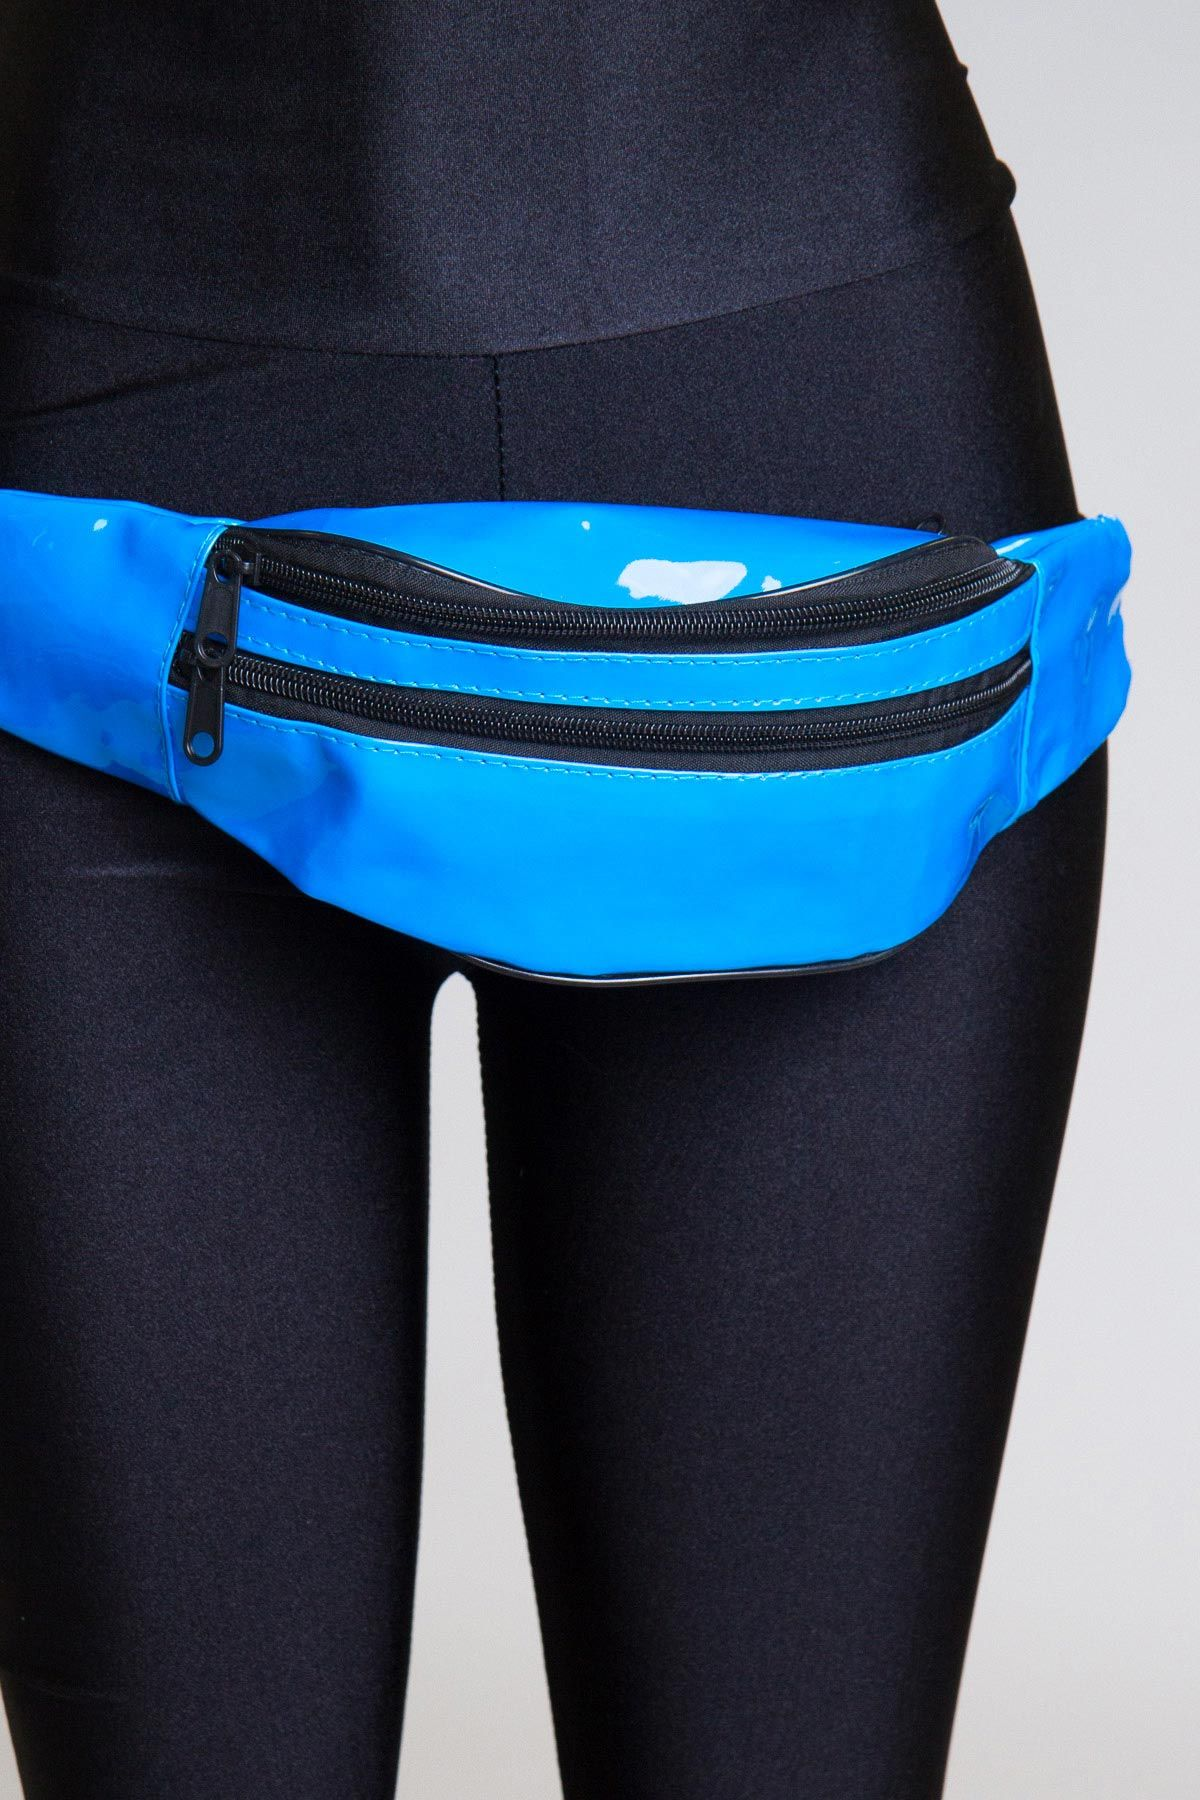 vinyl fanny packs are now available online!!